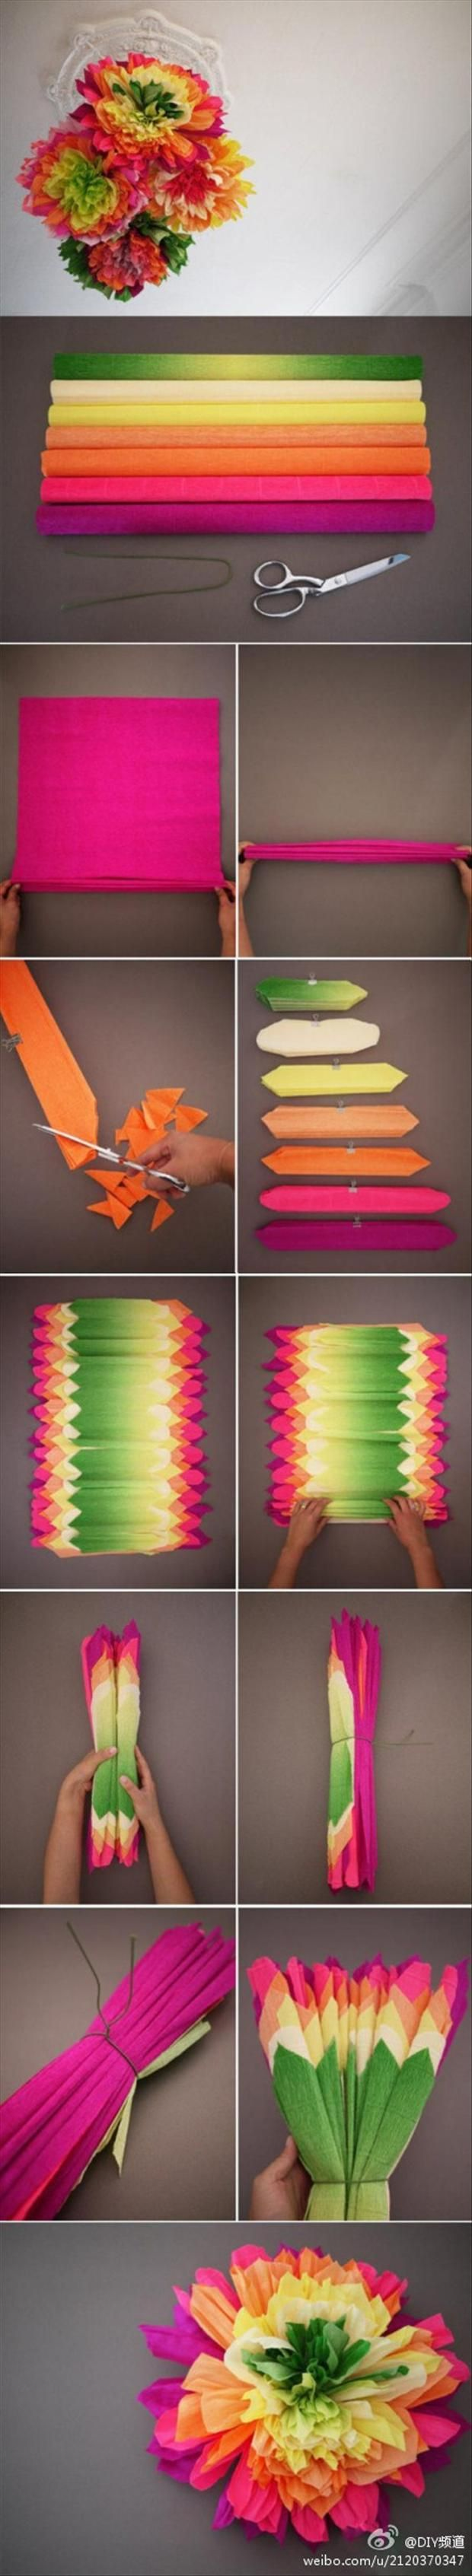 Layered Tissue Paper Flower Flowers Diy Crafts Instructions Home Decor Crafty Fabric Pillows Easy